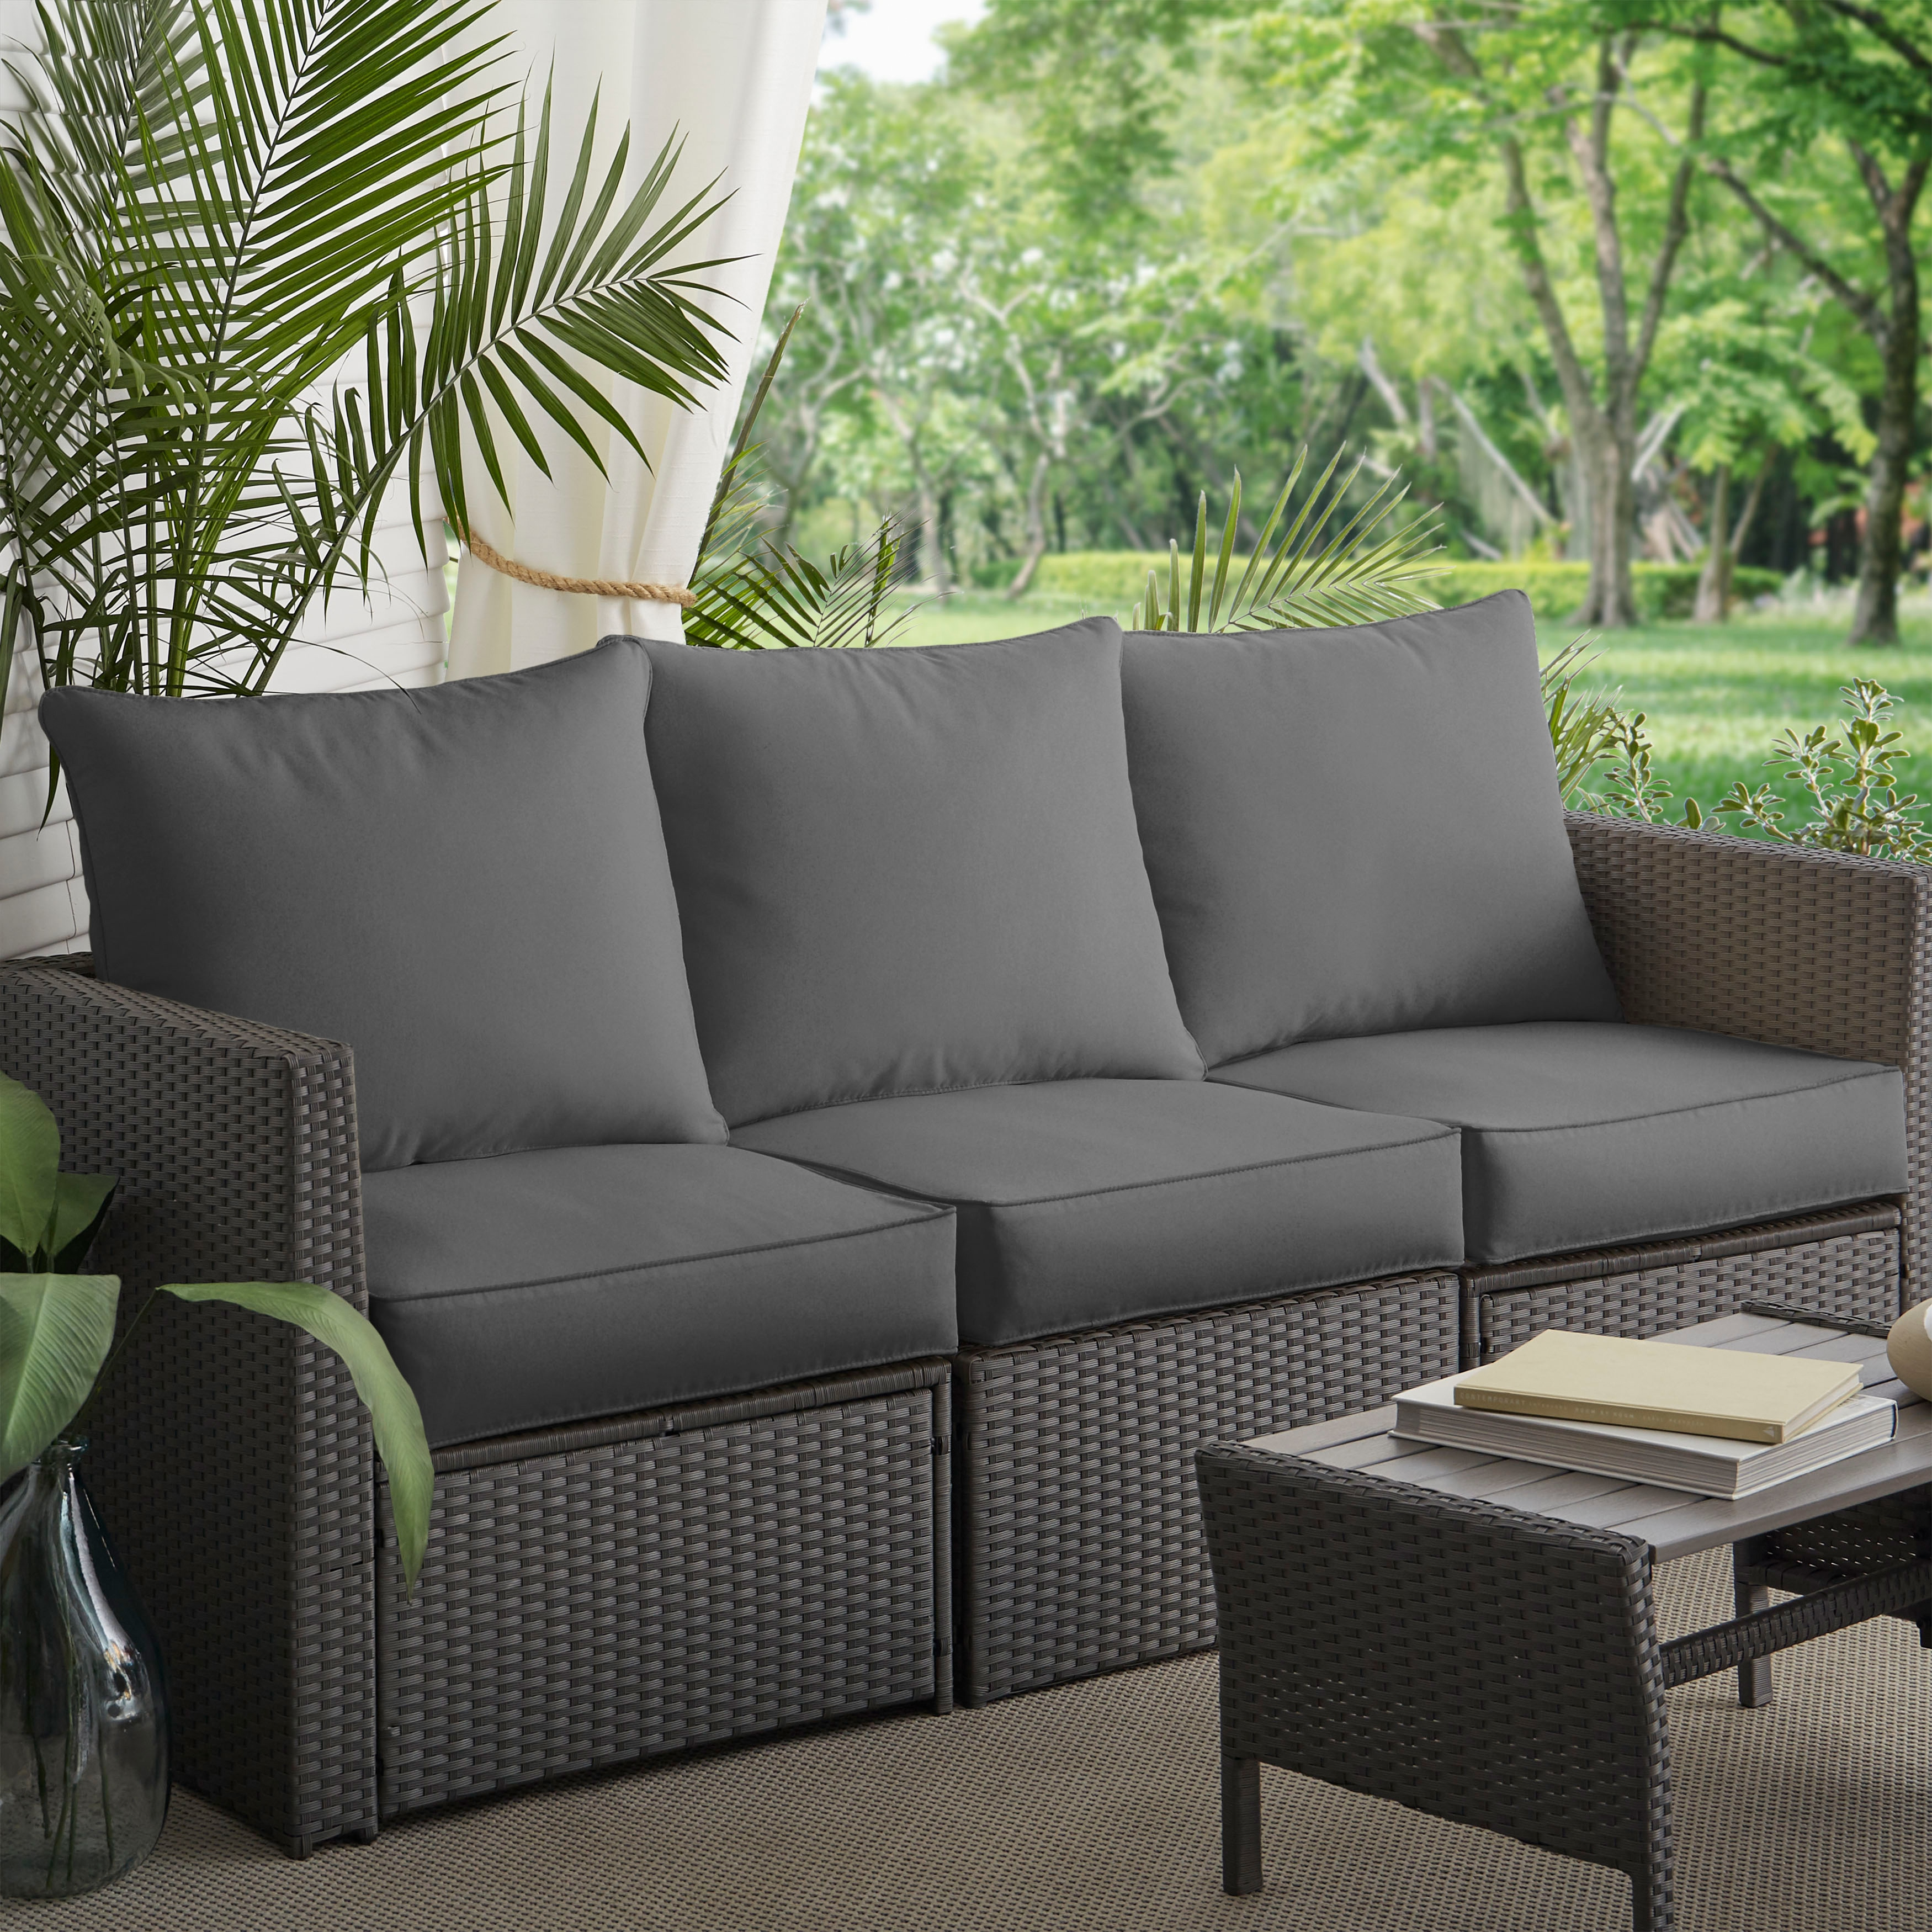 Morgantown Charcoal Indoor Outdoor Corded Sofa Cushion Set By Havenside Home Overstock 11459840